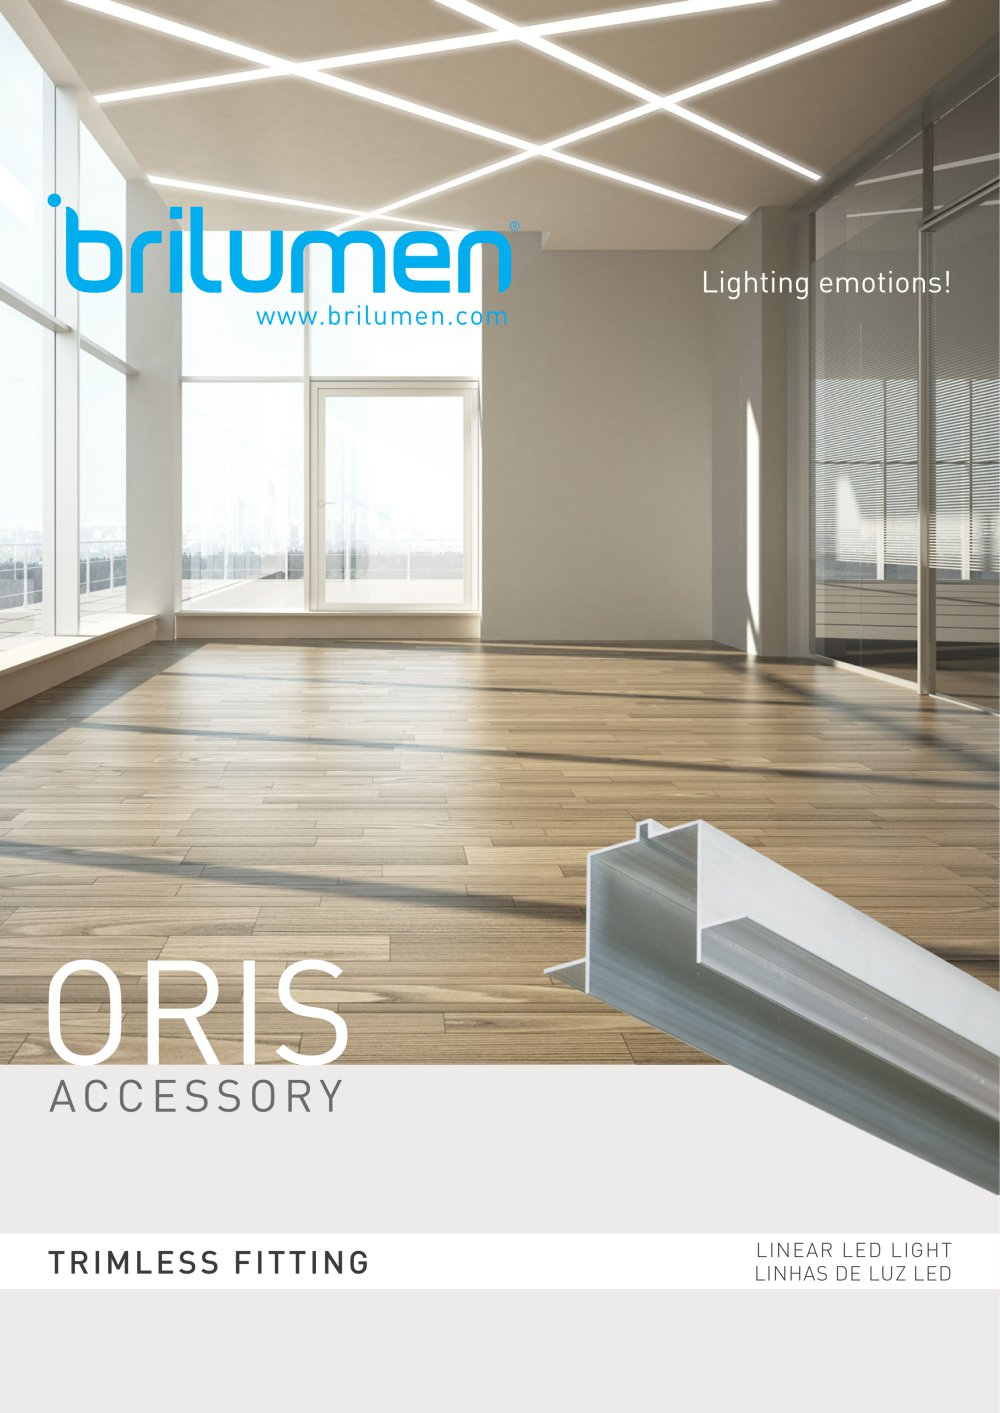 trimless fitting brilumen pdf catalogues documentation brochures